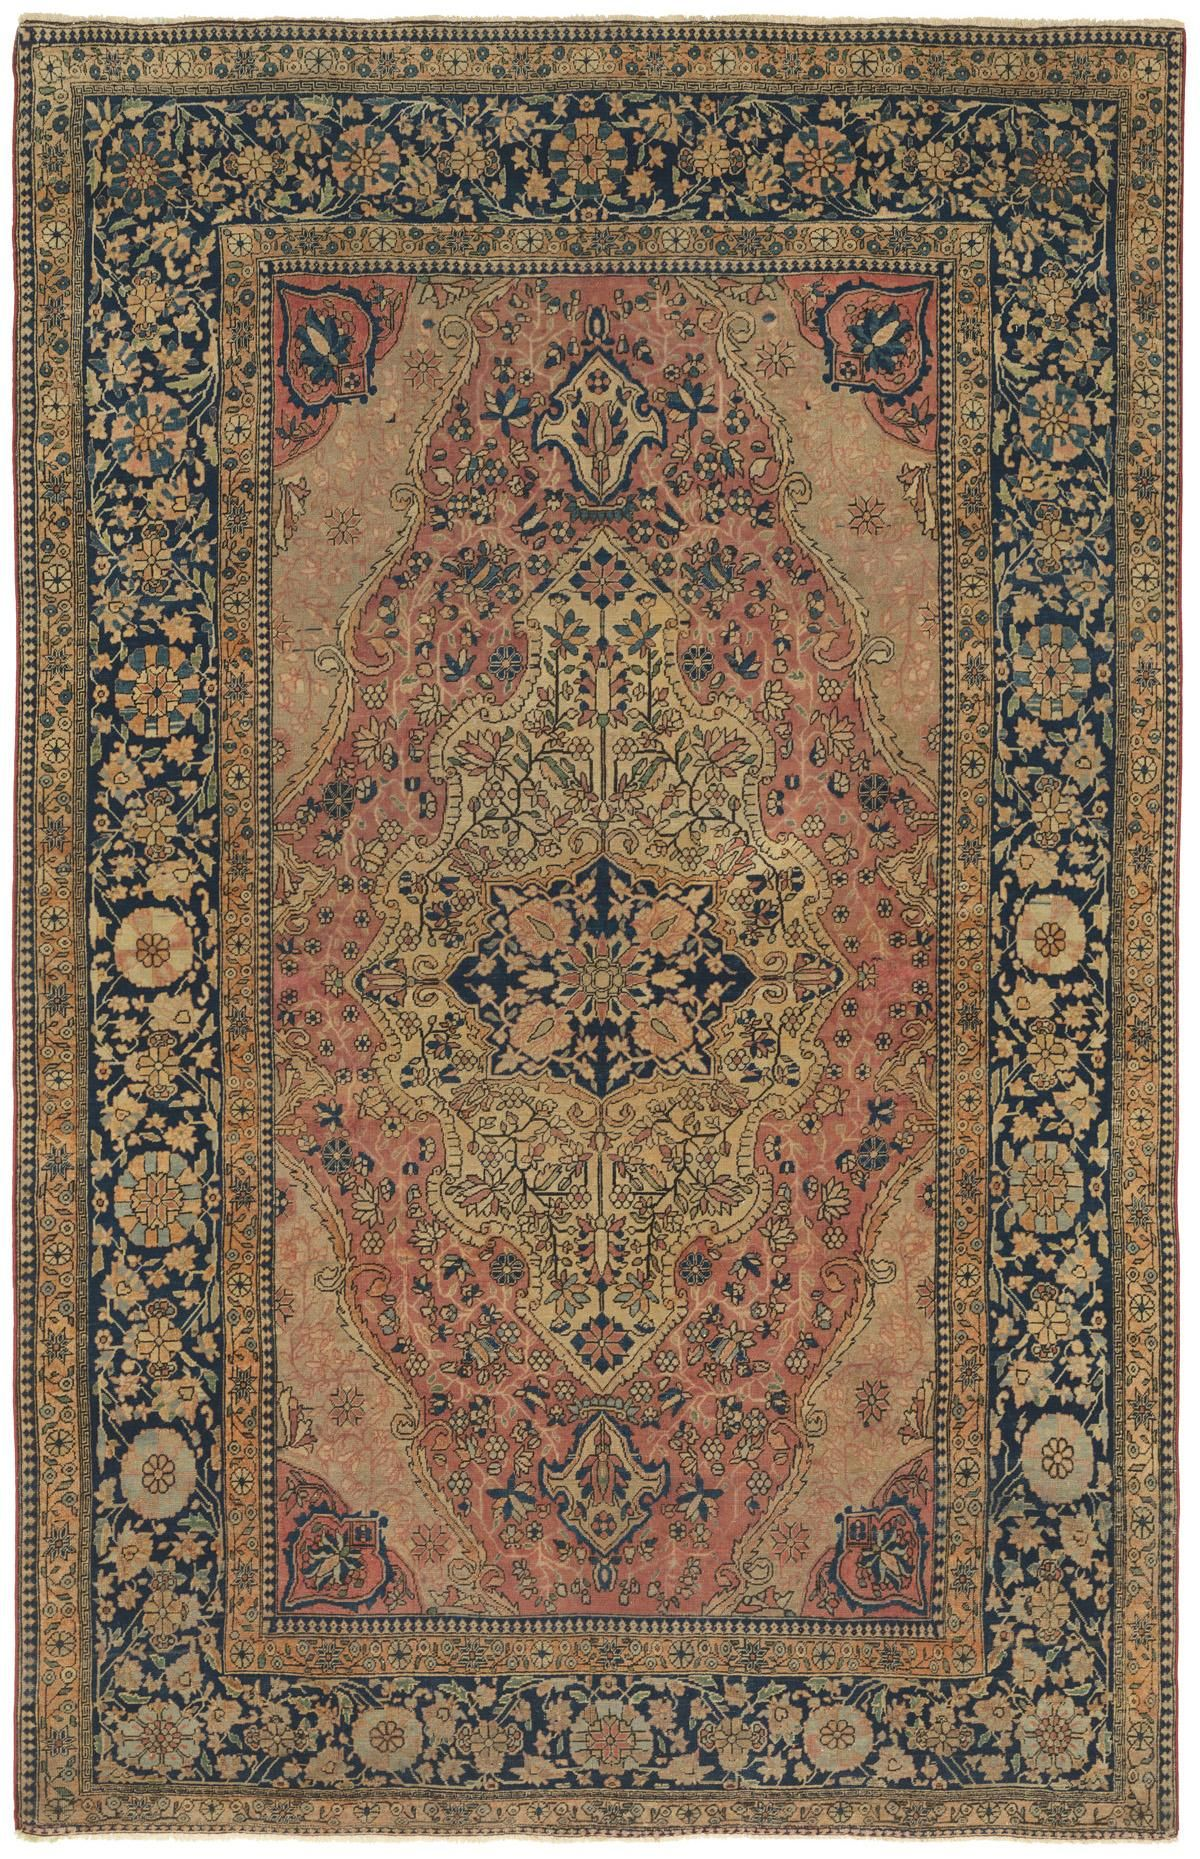 Pin By Petar Tconev On My Saves In 2020 Persian Rug Designs Rugs On Carpet Tribal Rug